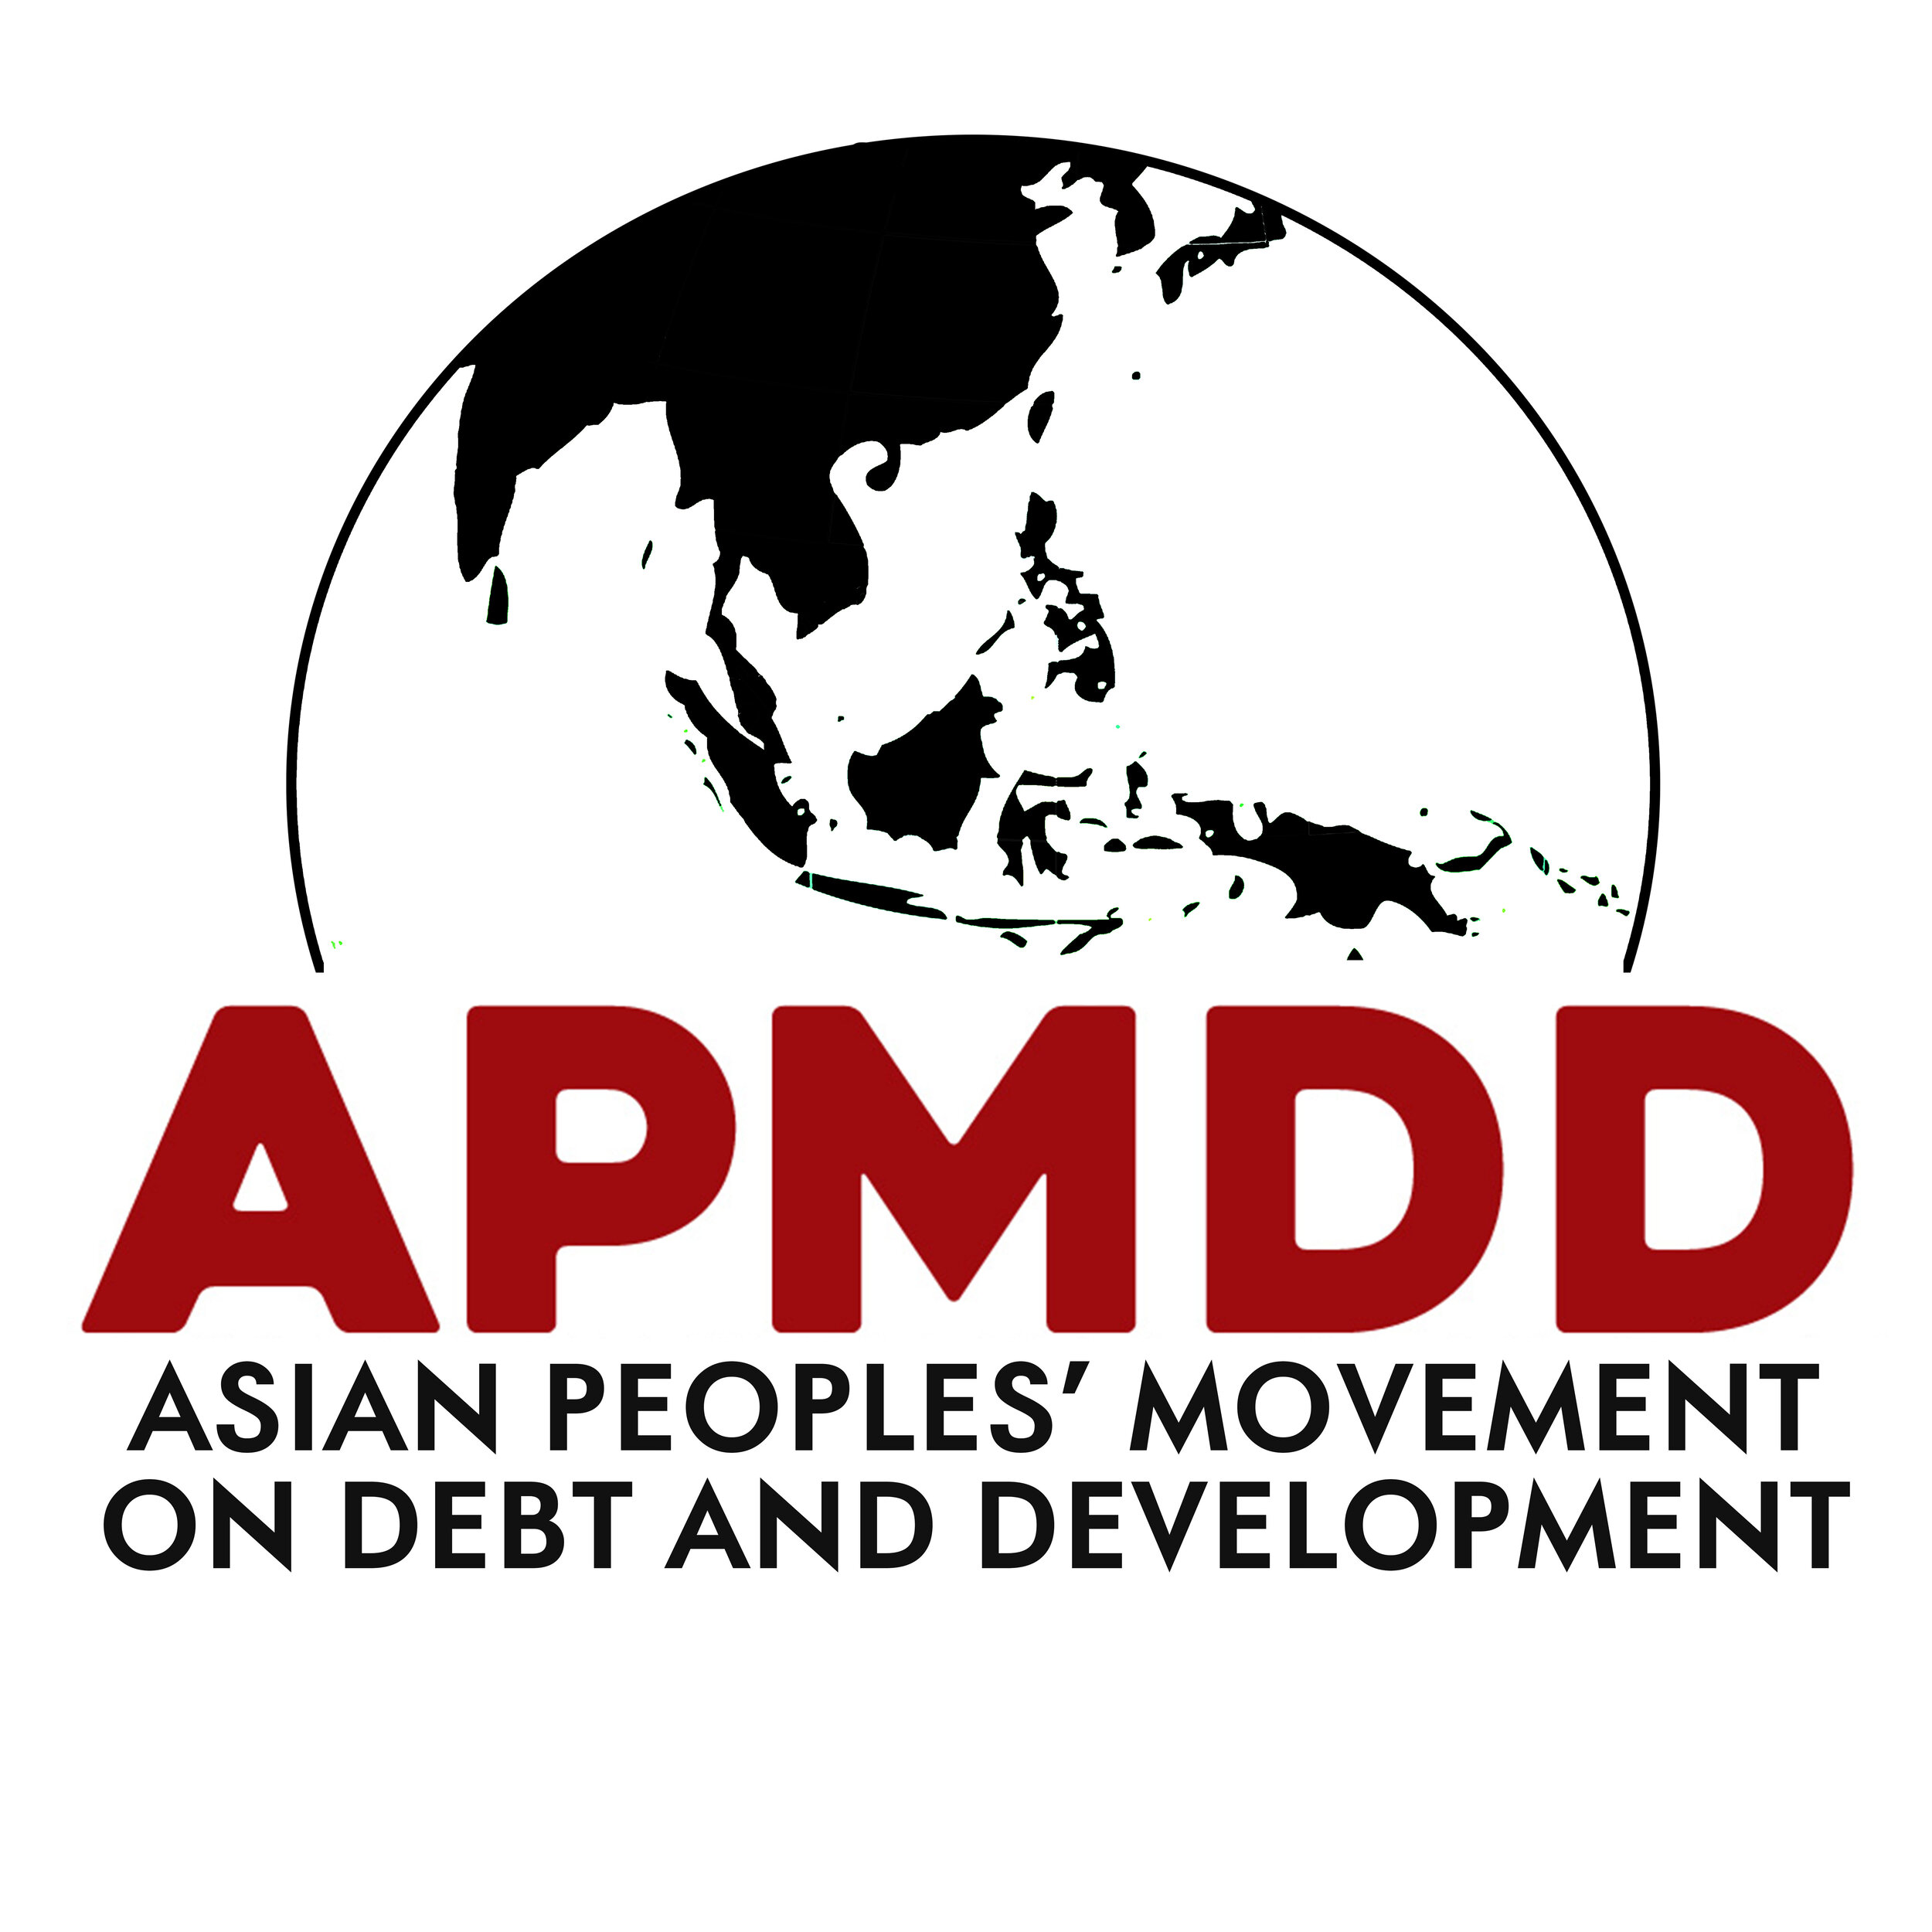 Asian Peoples' Movement on Debt and Development